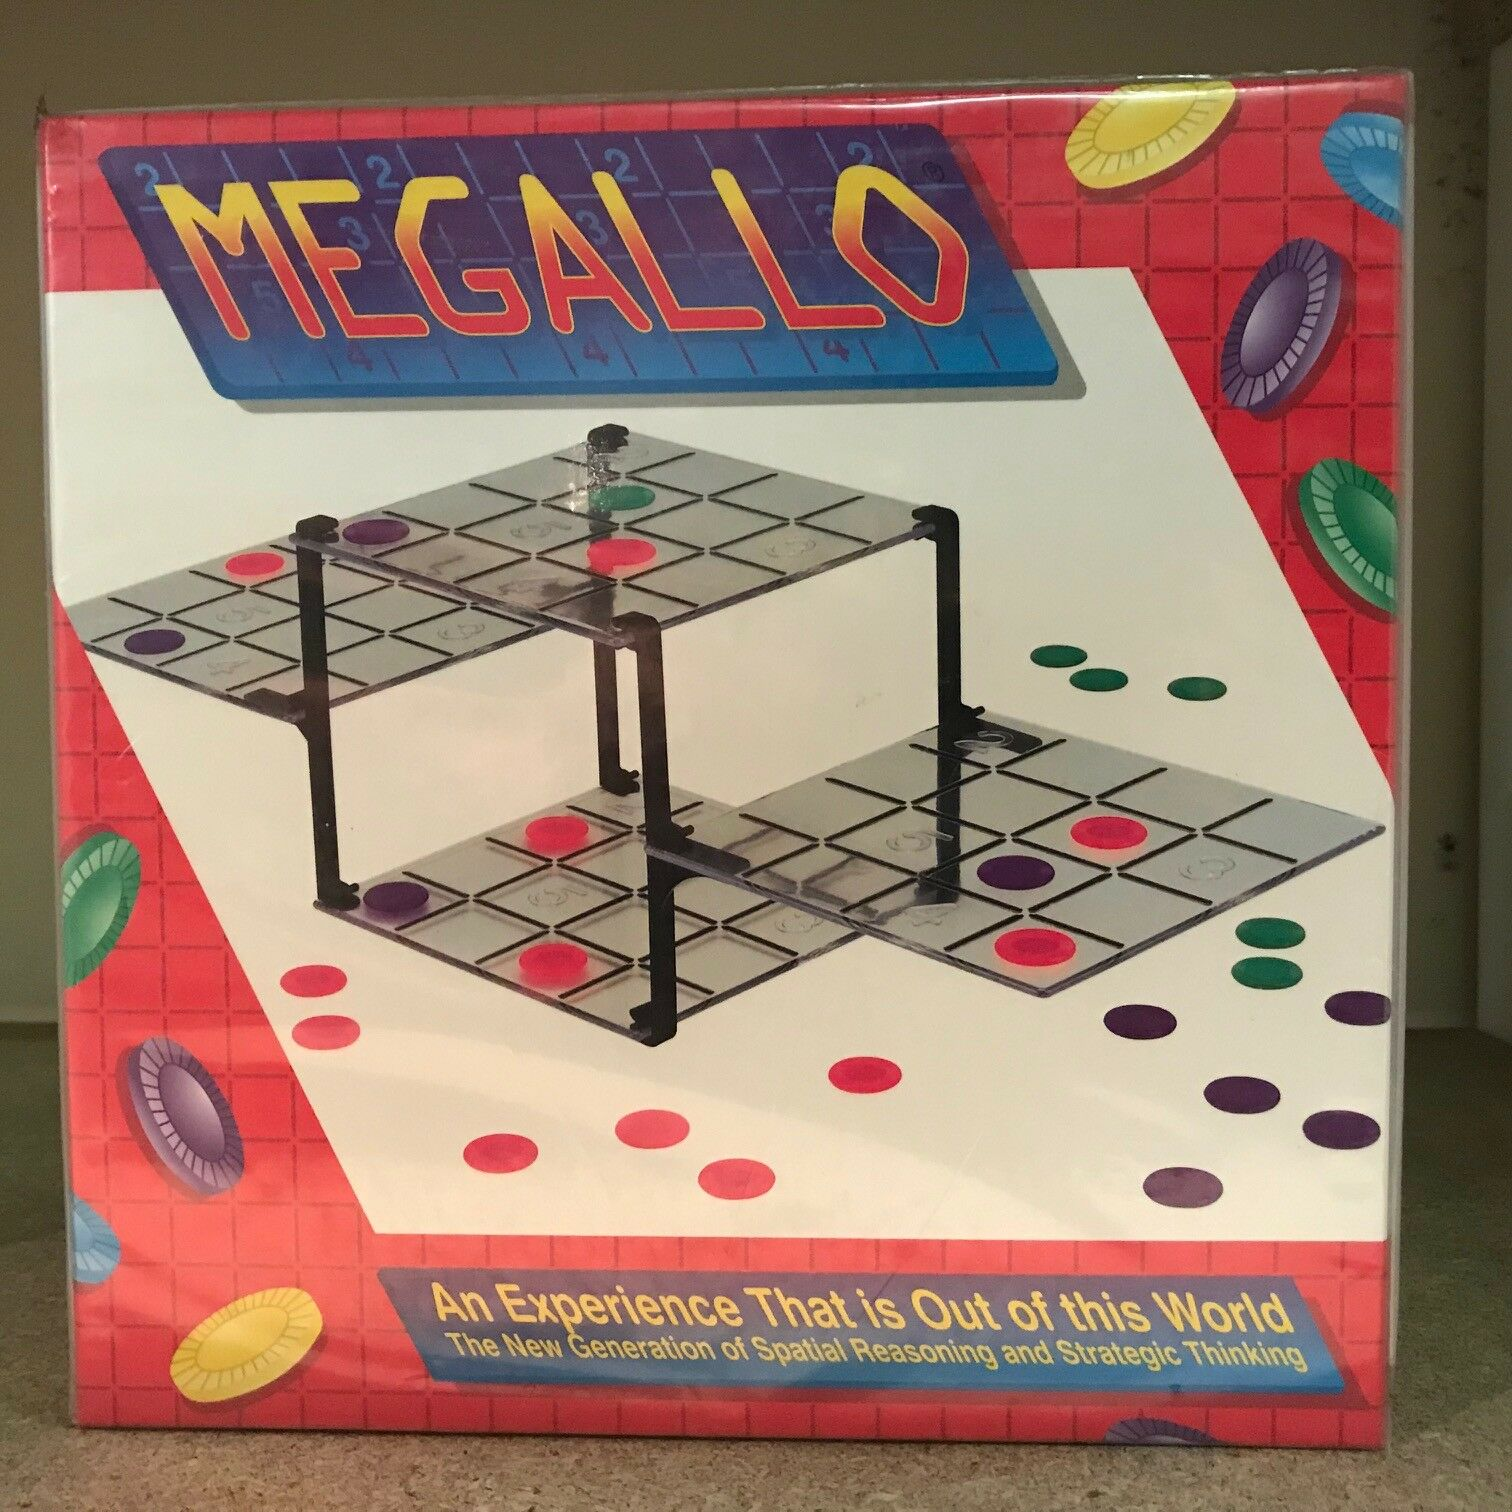 Megallo Board Game - Be the Best Spatial Reasoner & Strategic Thinker to Win